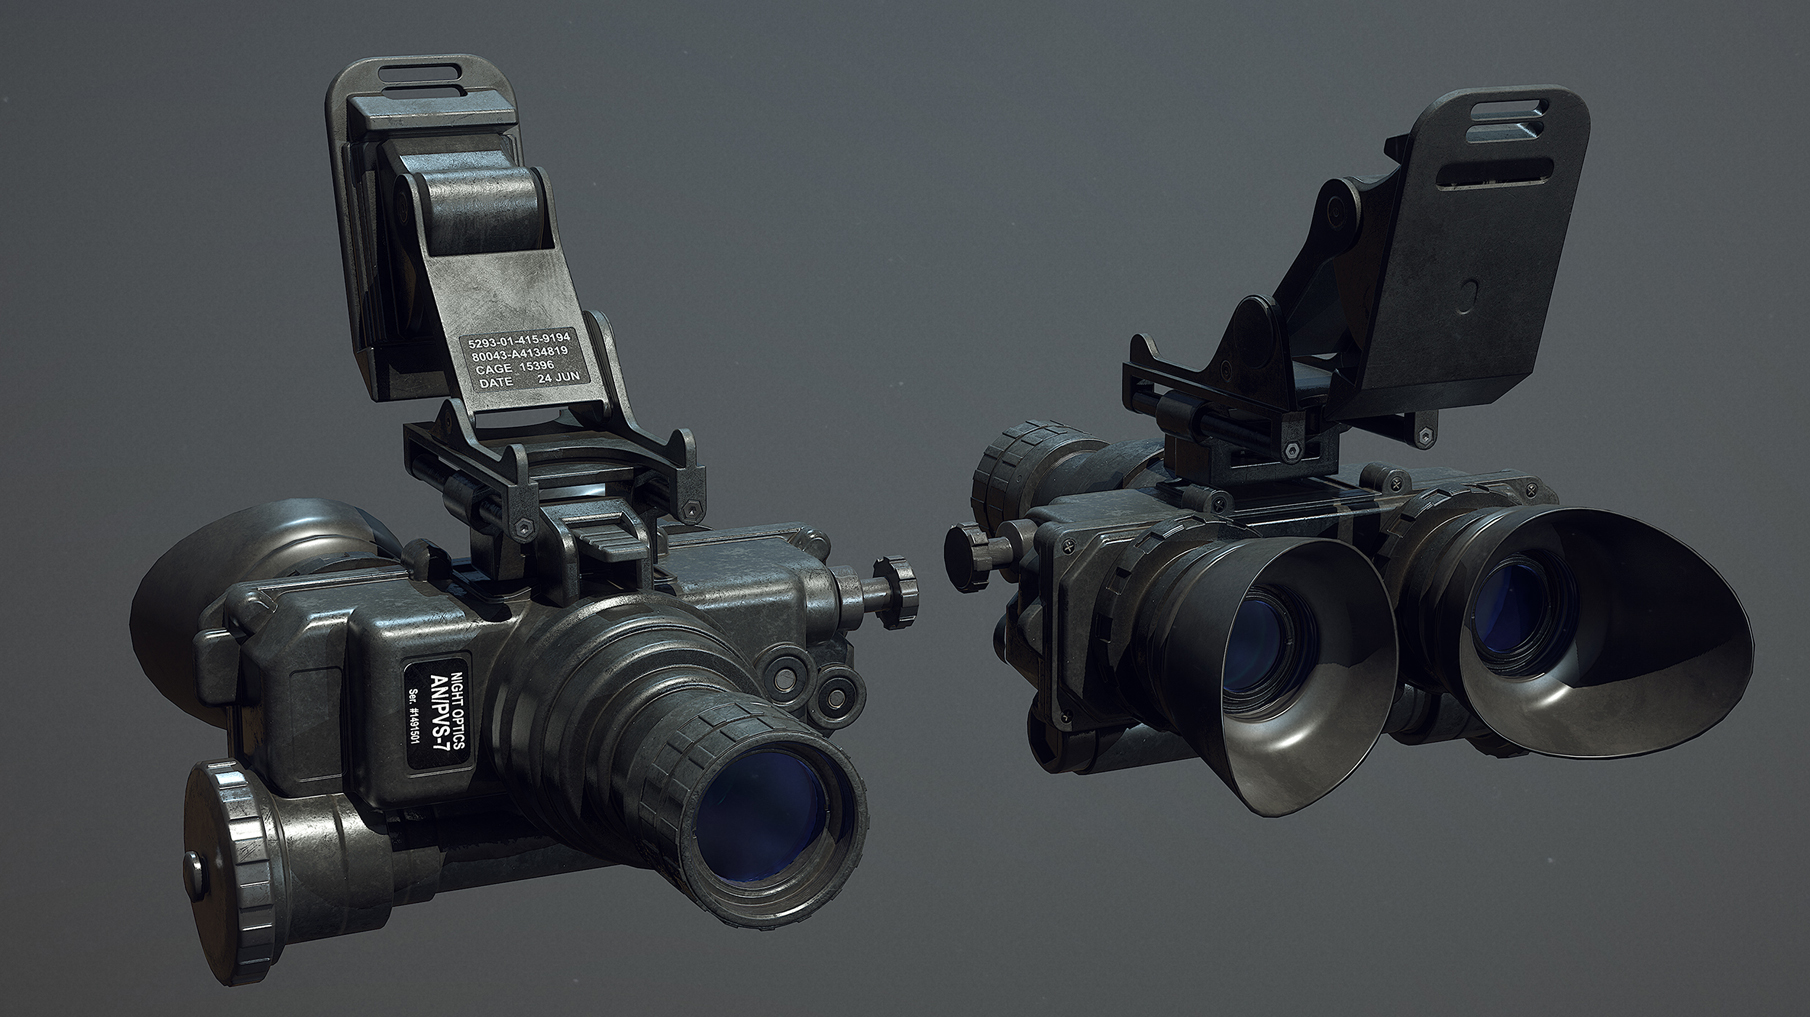 new model for the AN/PVS-7, night vision goggles for the VOLK faction.